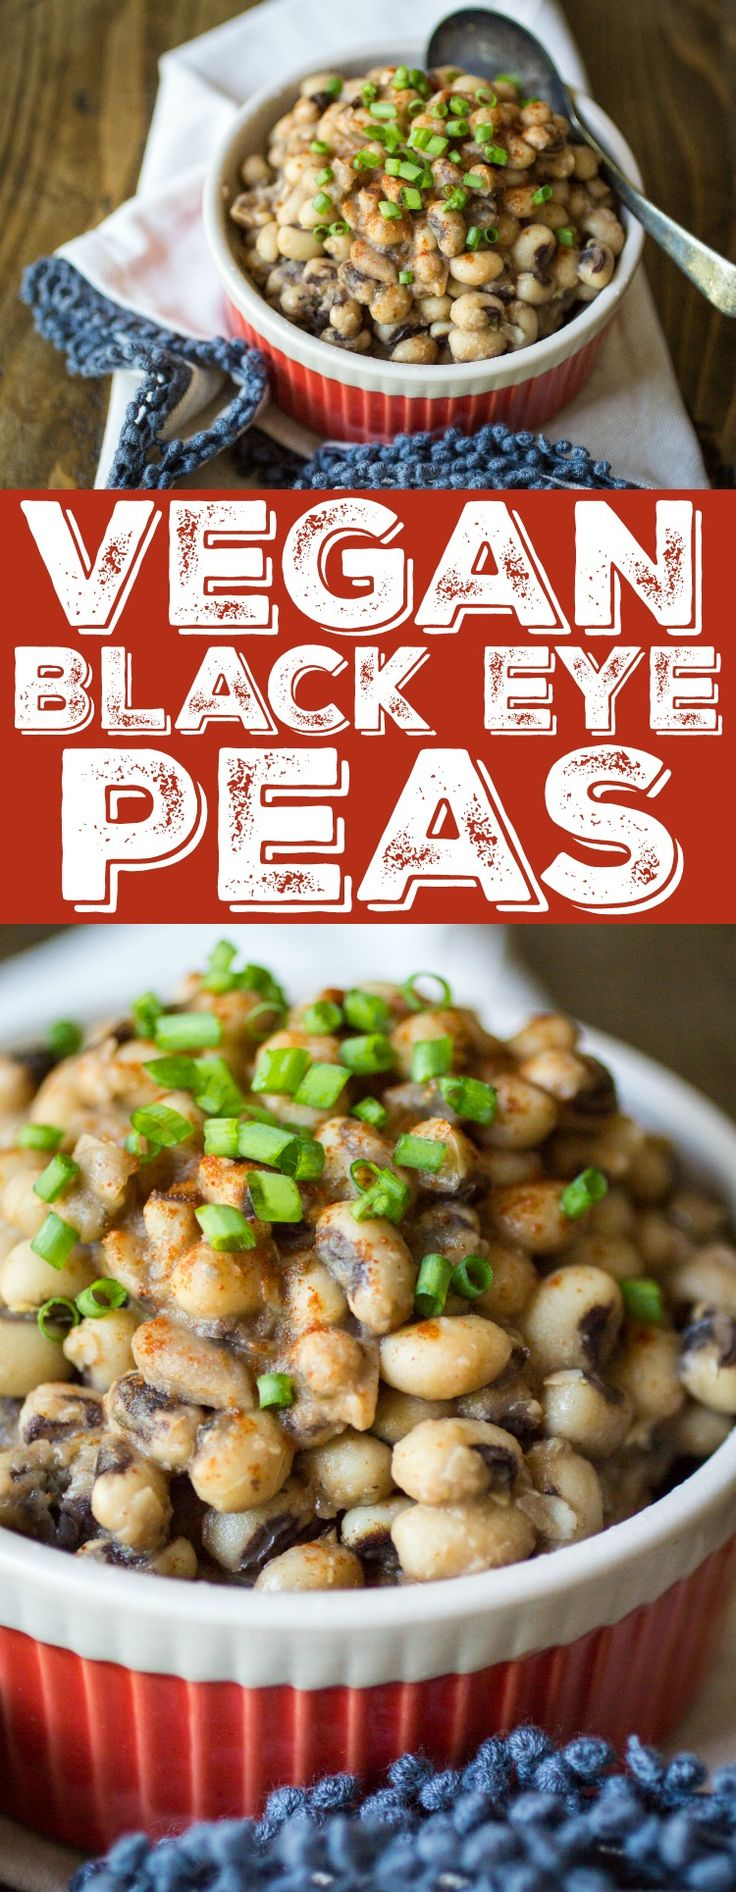 Vegan black eyed peas get a southern-style kick from hot sauce, spices, and a secret ingredient.